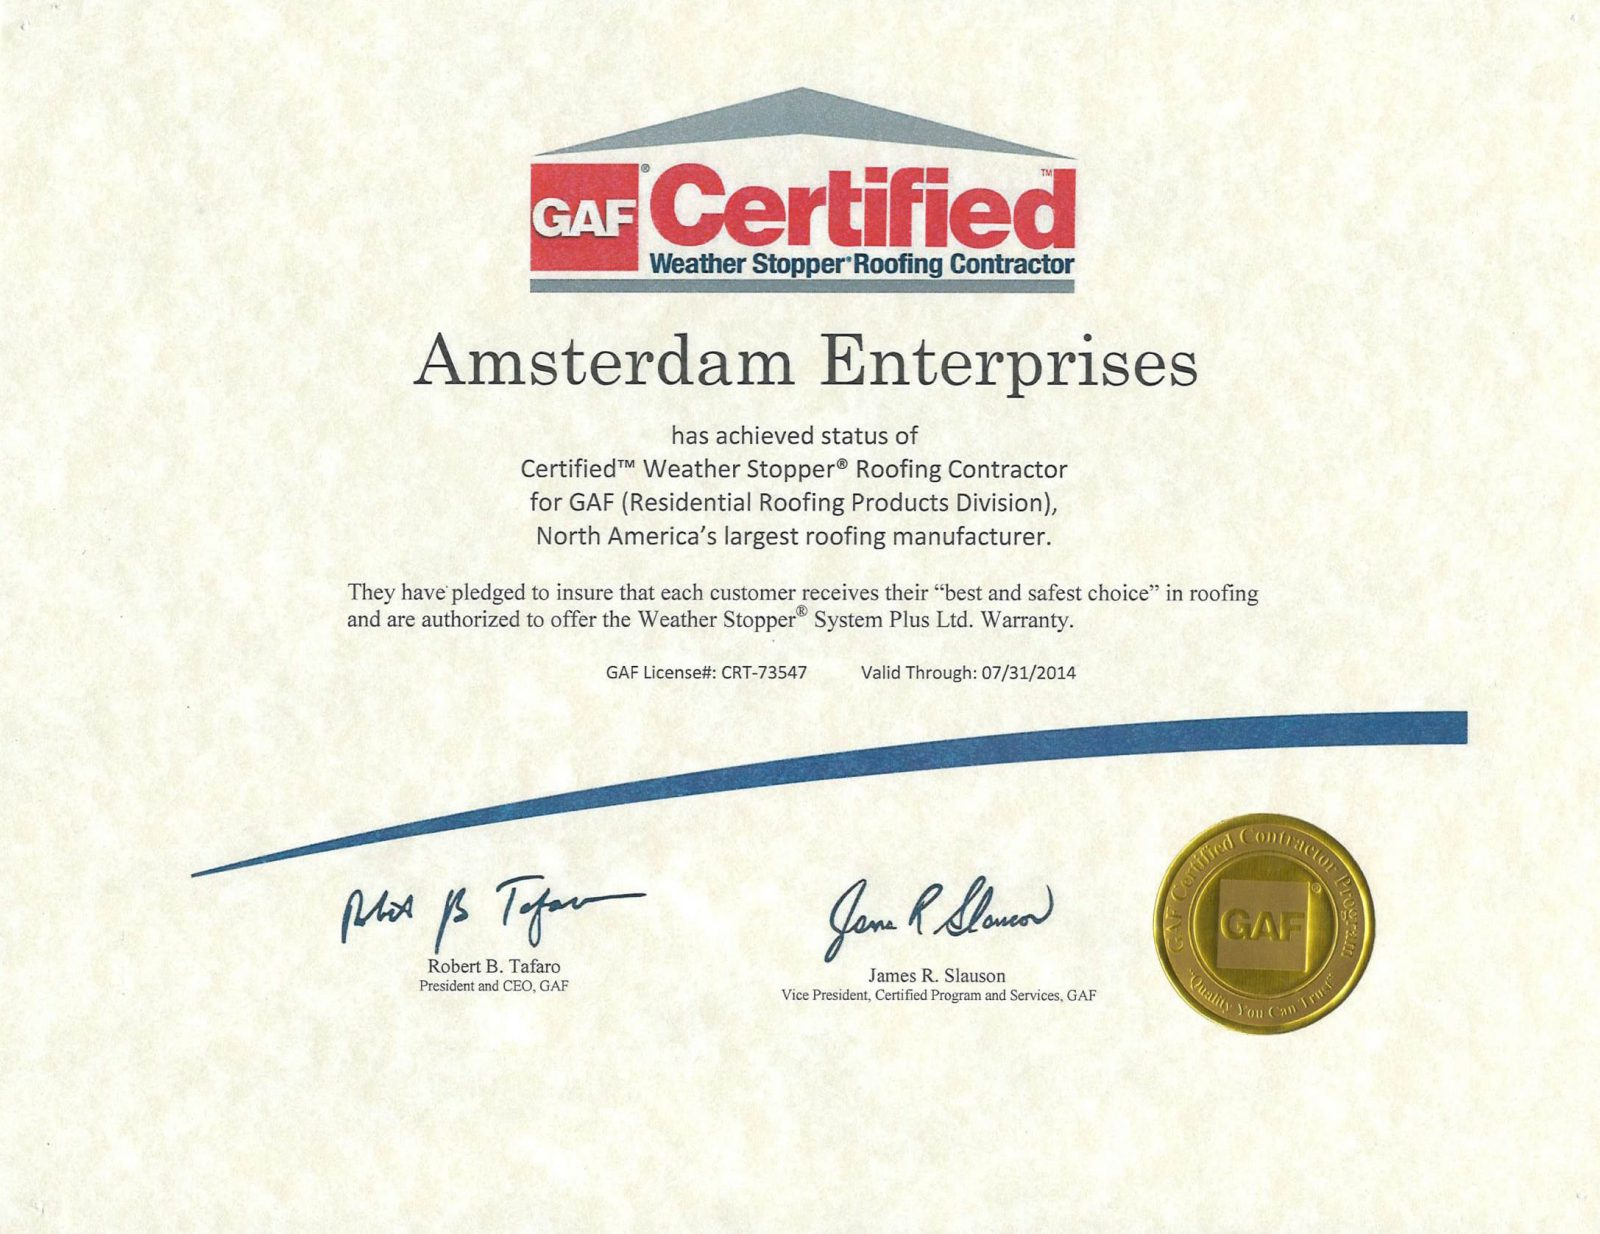 GAF-Certificate-Weather-Stopper-Roofing-Contractor